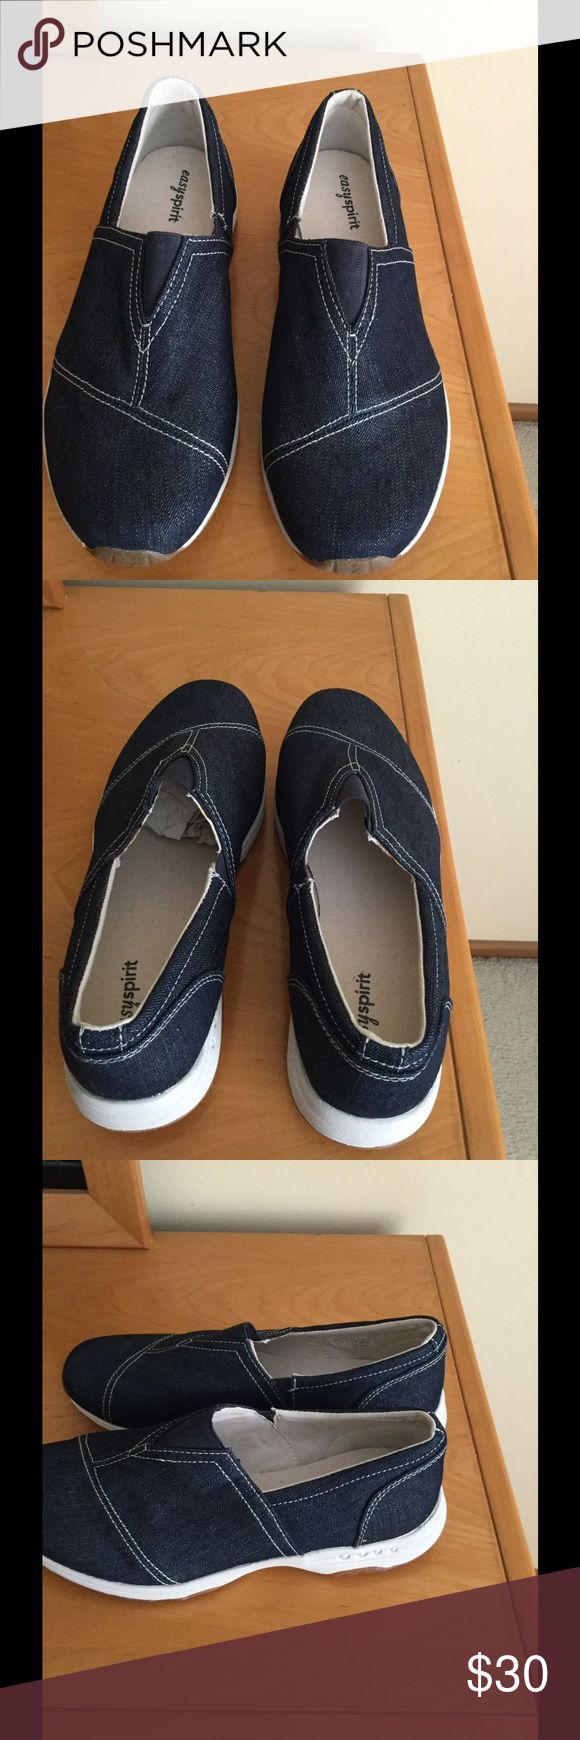 New Easy Spirit denim canvas slip on shoes . New with out box Easy Spirit canvas slip on shoes . Price firm !!! Easy Spirit Shoes Moccasins